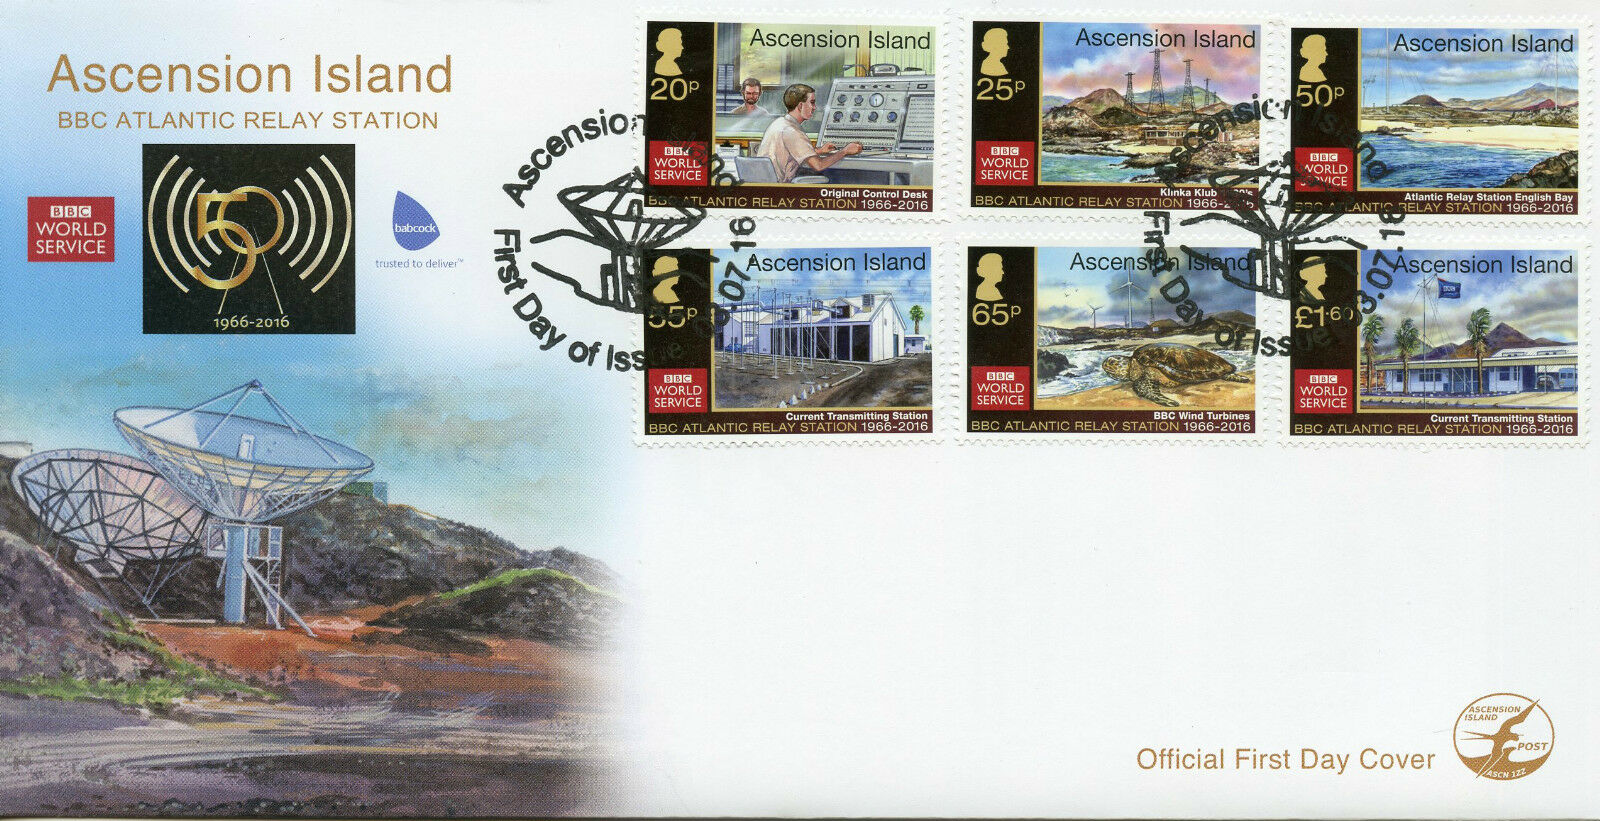 ascension island 2016 fdc bbc atlantic relay station 50th. Black Bedroom Furniture Sets. Home Design Ideas